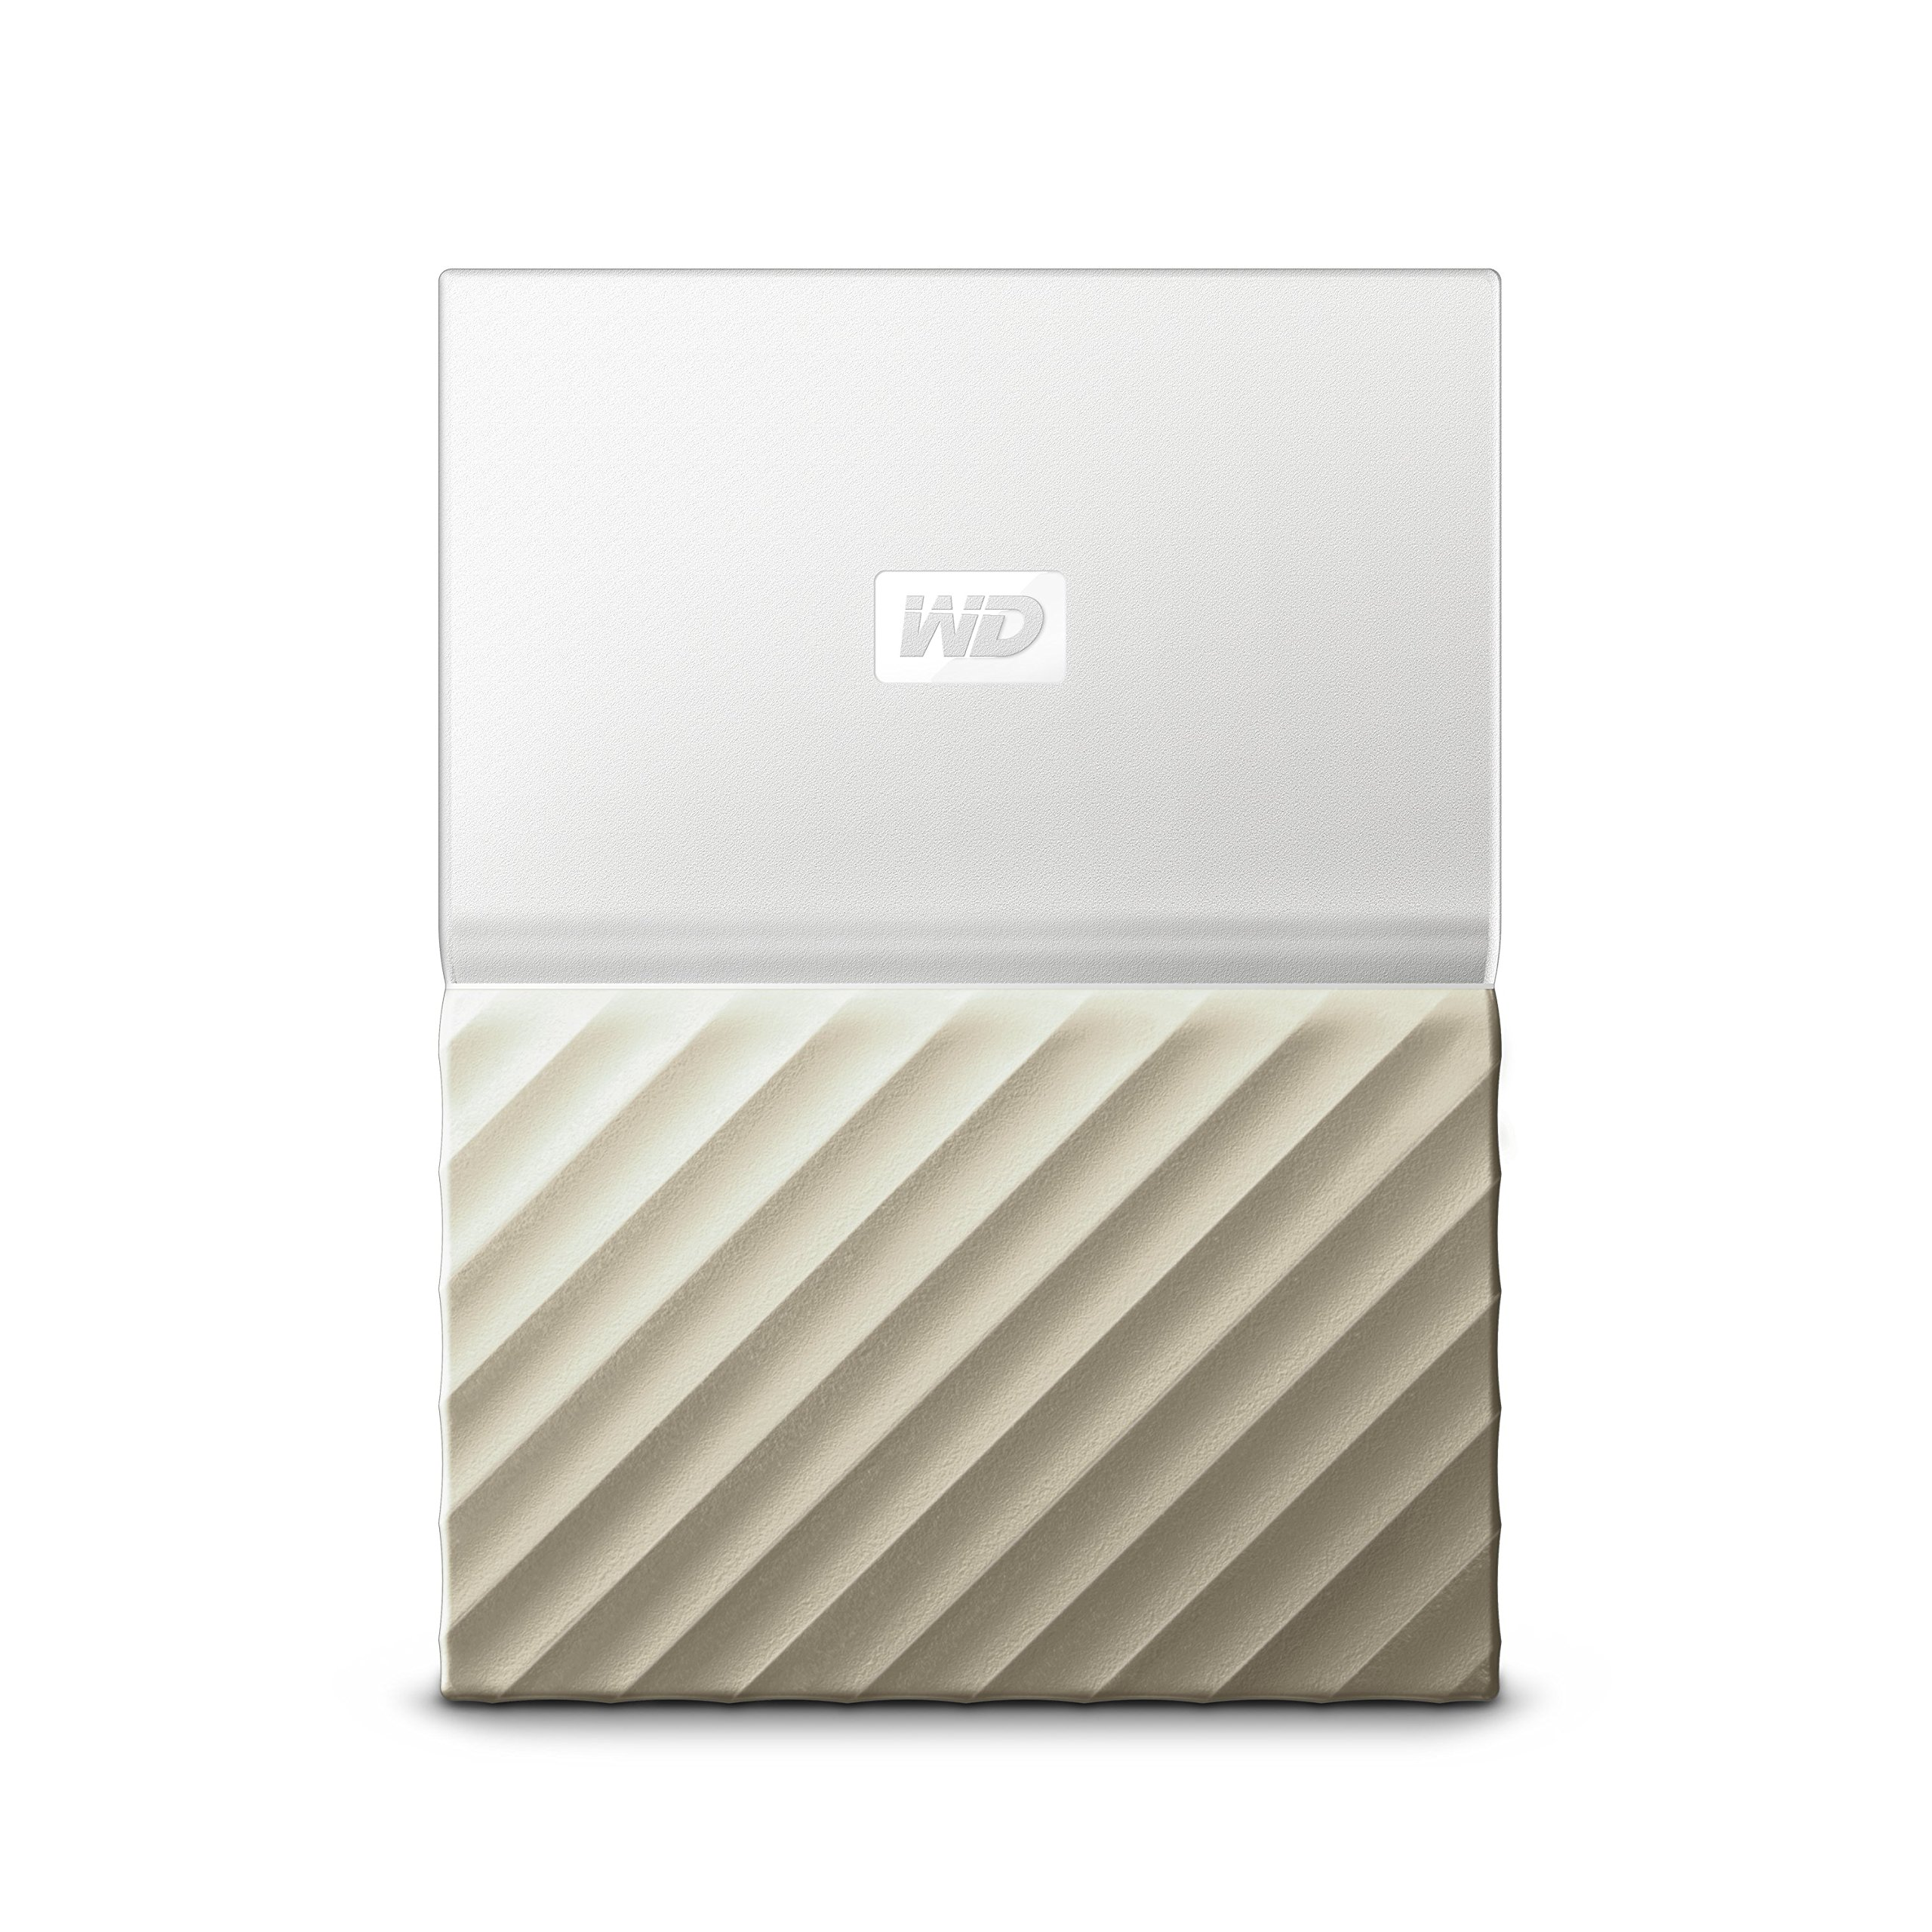 WD 마이 패스포트 울트라 3TB 포터블 외장하드  - 화이트 골드 Western Digital WD 3TB White-Gold My Passport Ultra Portable External Hard Drive - USB 30